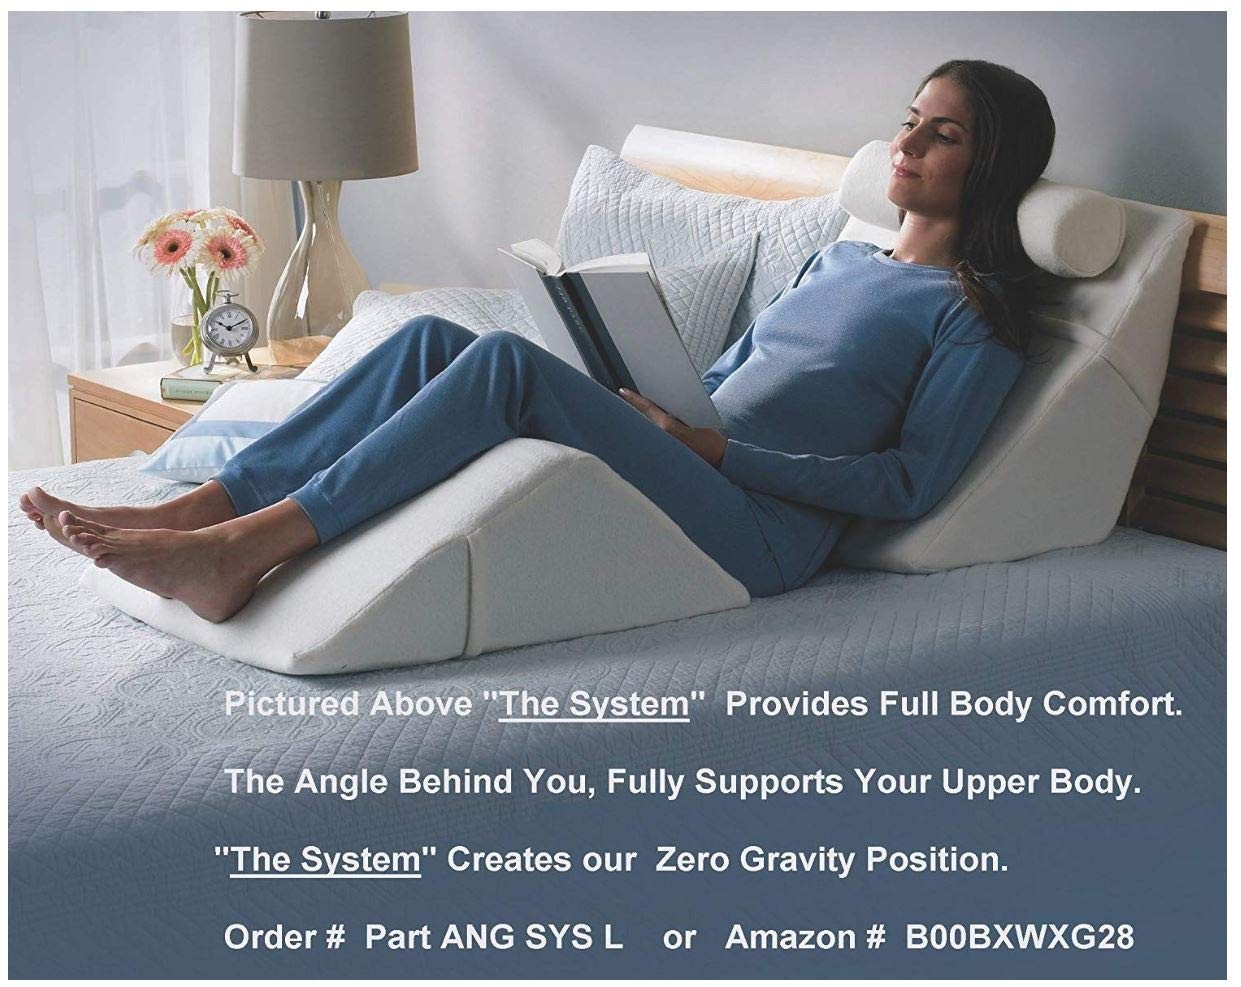 The Angle by Back Support Systems - Guaranteed to Help Reduce Back Pain Immediately. Eco Friendly, Medical Quality Memory Foam Bed Wedge Leg Pillow for Reducing Back Pain, Back Therapy and Sleeping by Back Support Systems (Image #8)